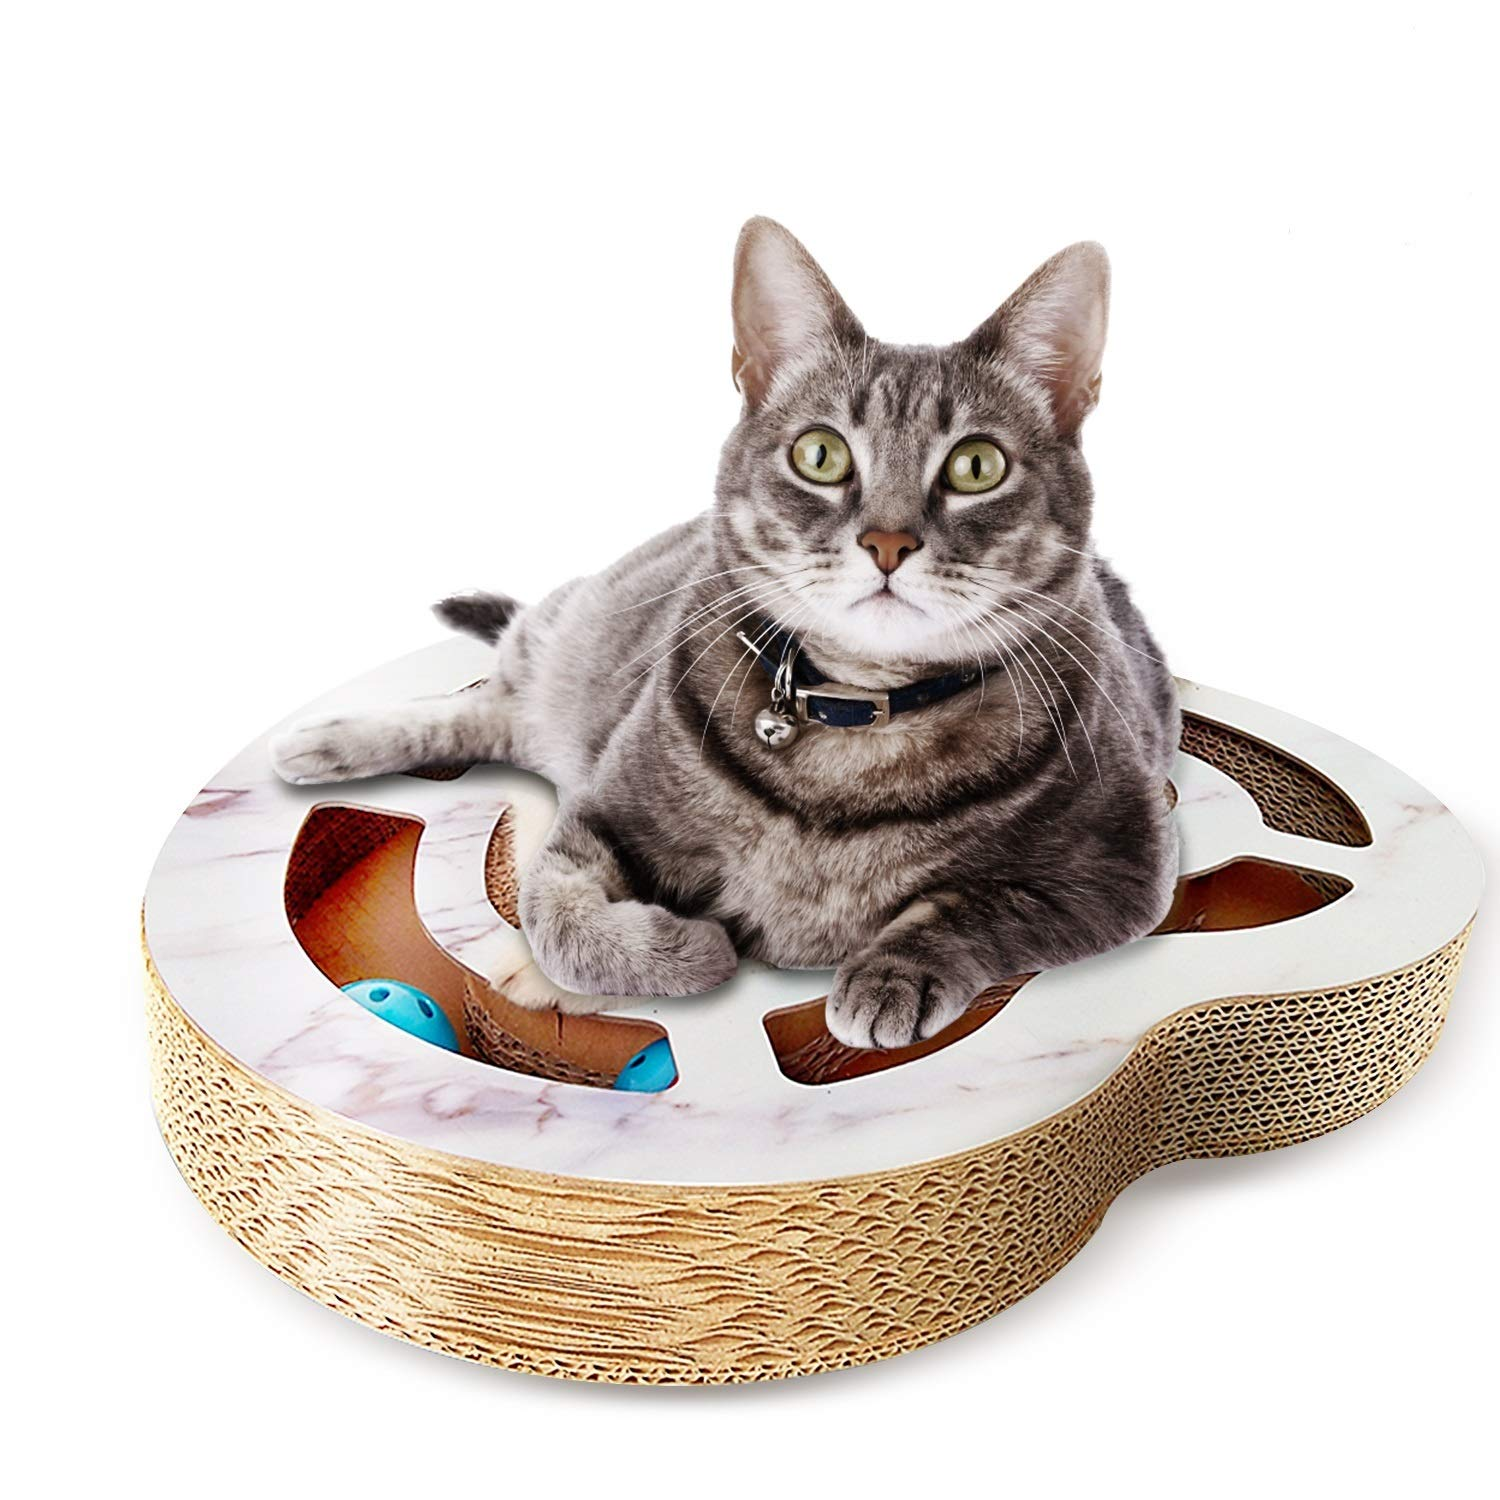 Nittis Heart-Shaped Scratcher Cat Toys with Bell Balls,Interactive cat Toy,Deluxe Cat Scratcher Lounge,Cardboard Cat Scratching Post